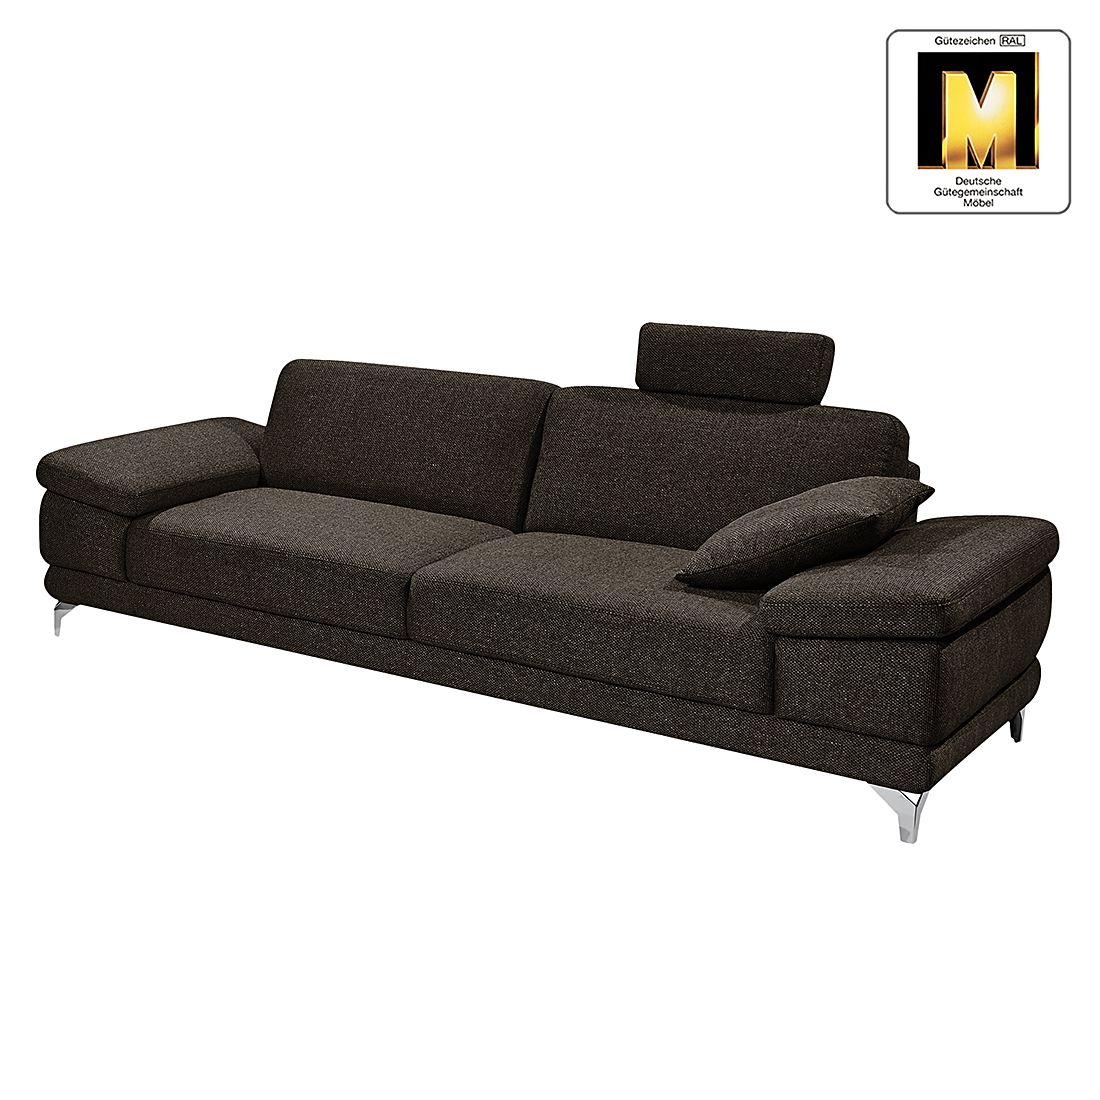 sofa casual line 2 5 sitzer strukturstoff verstellbare armlehnen braun claas claasen. Black Bedroom Furniture Sets. Home Design Ideas